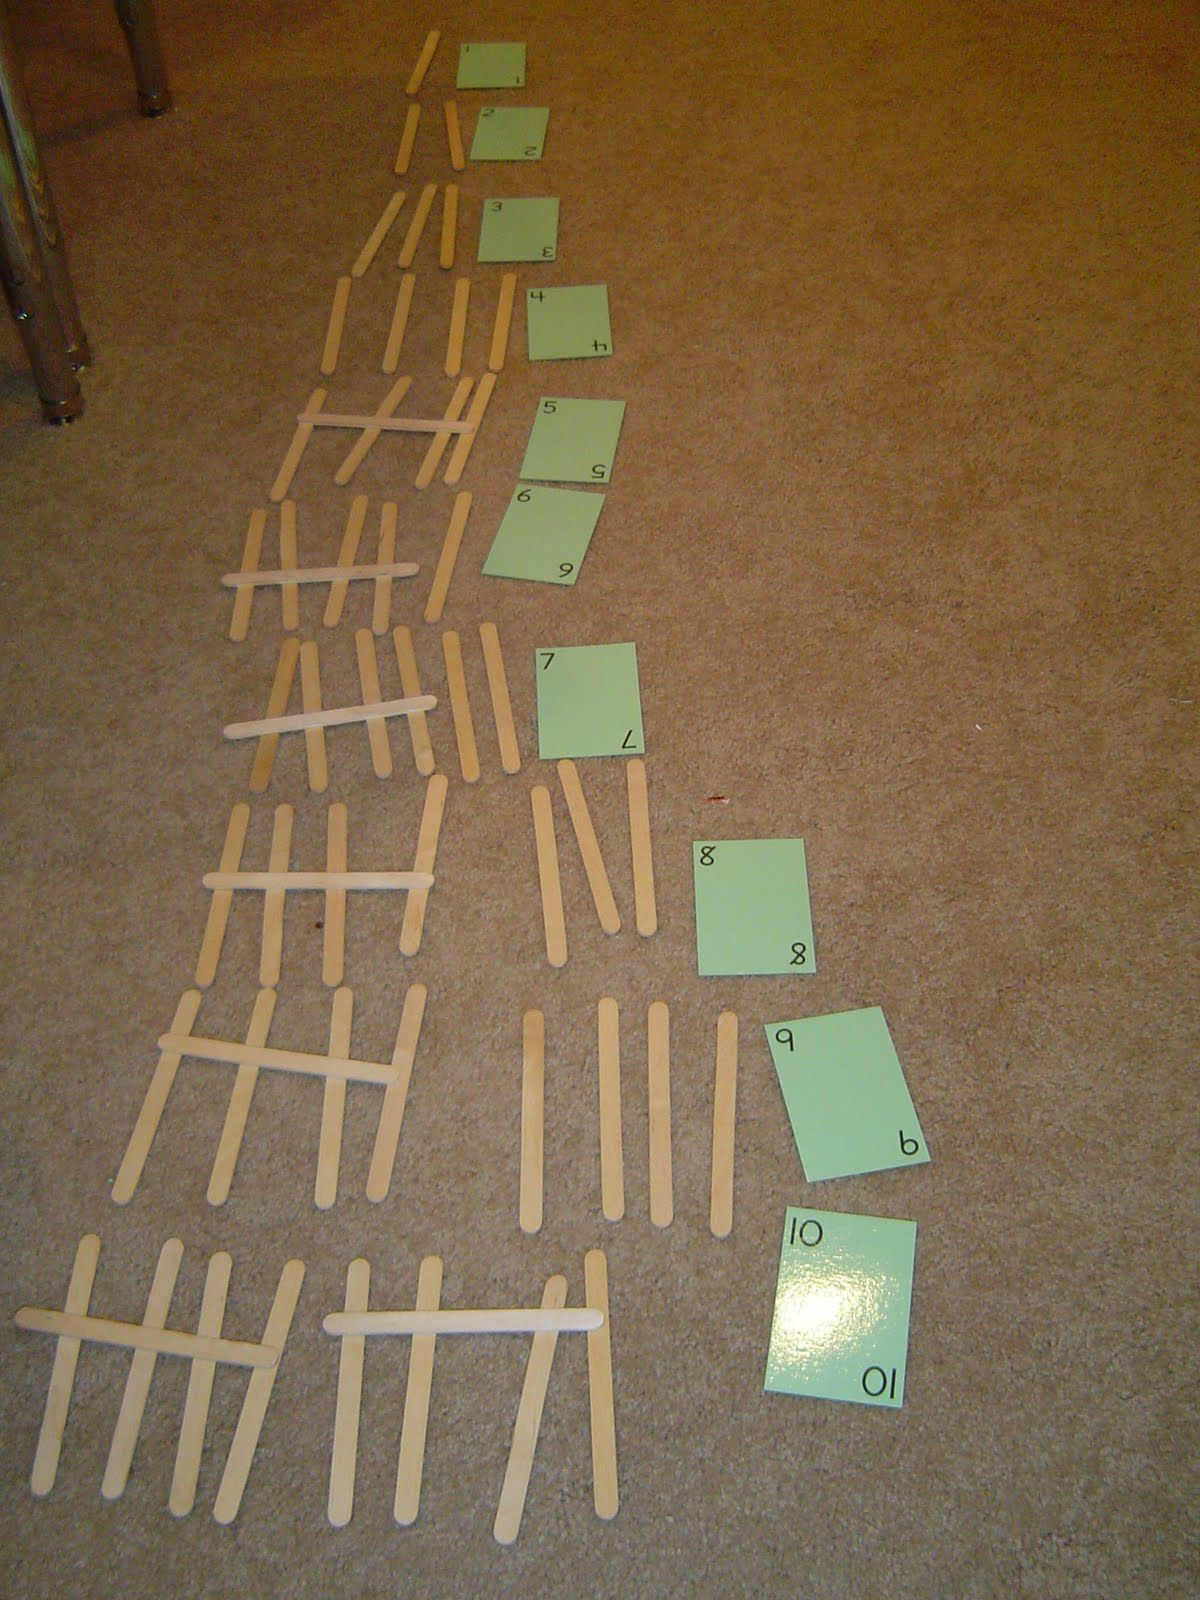 Tally Marks This Tactile Experience May Help Some